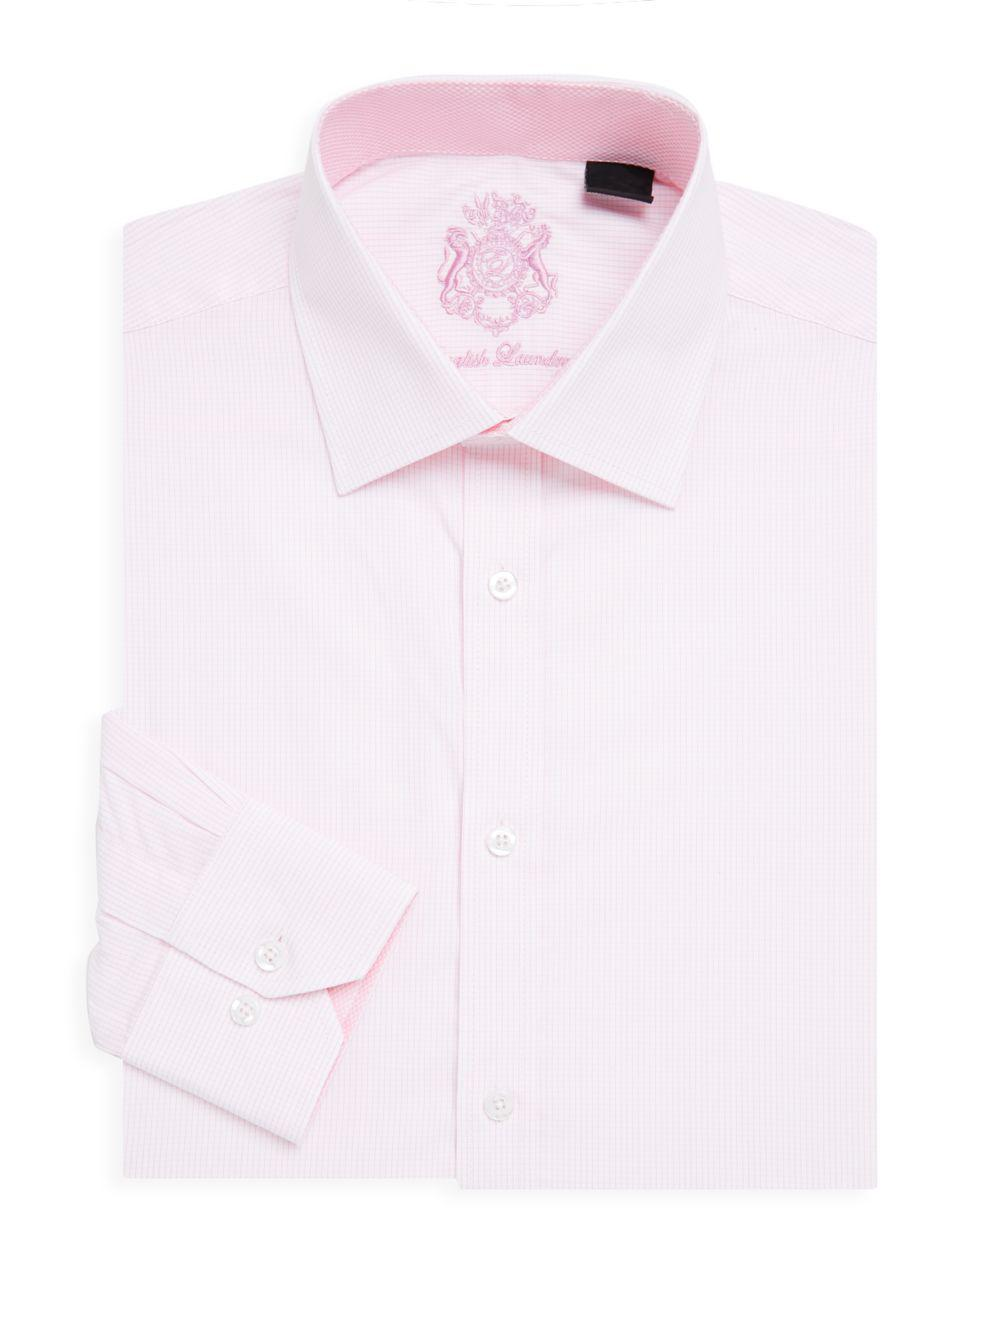 cabfdbc5e5 Lyst - English Laundry Micro Check Cotton Dress Shirt in Pink for ...